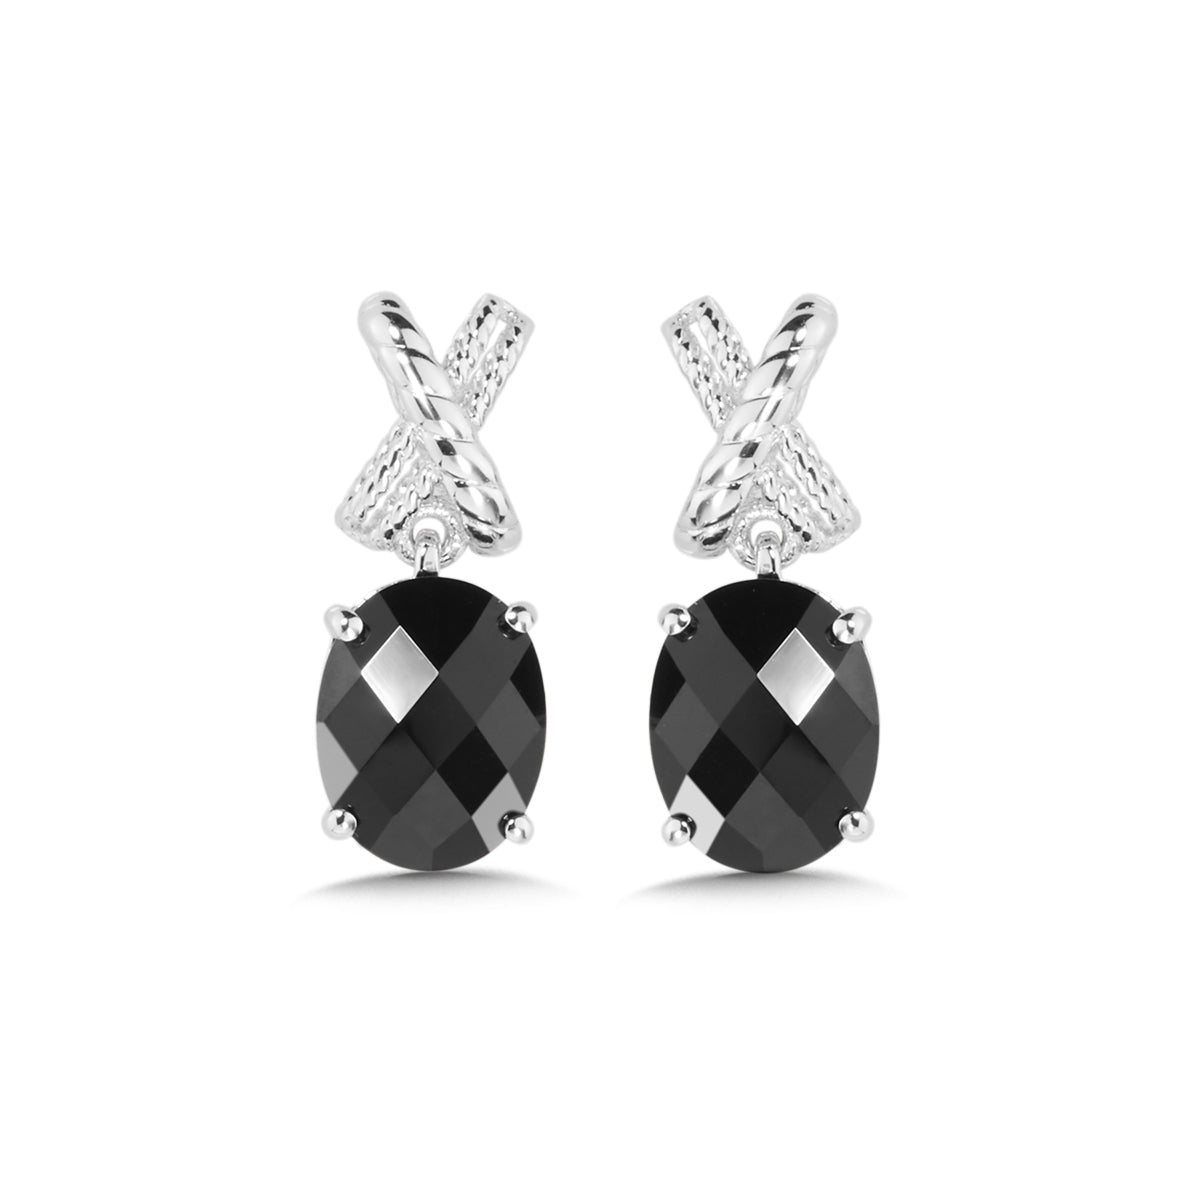 Oval Faceted Black Onyx Earrings, Sterling Silver